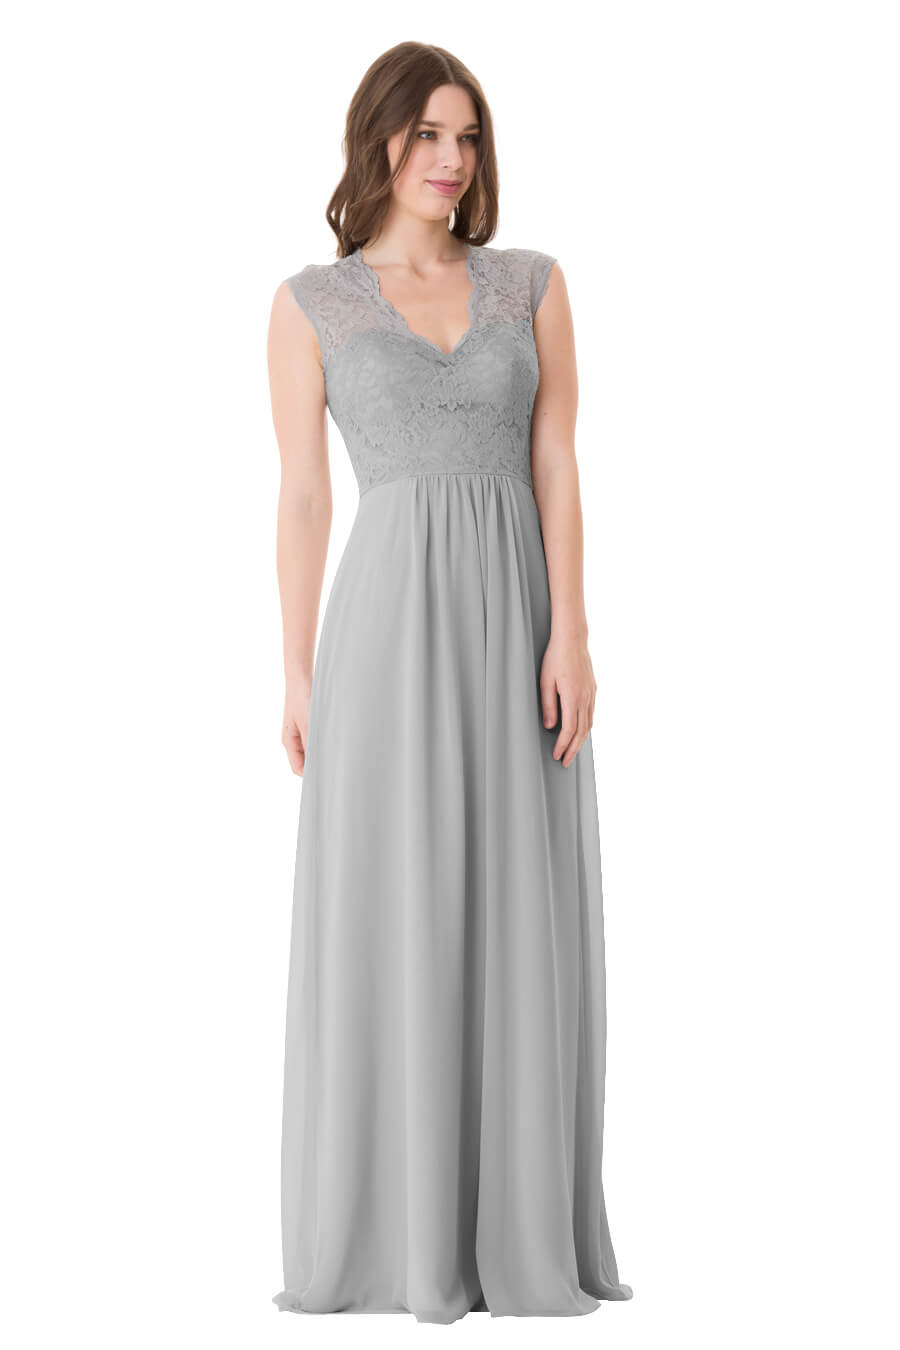 STYLE: 1650 (available short 1650-s) | Bridesmaid Dresses, Evening ...